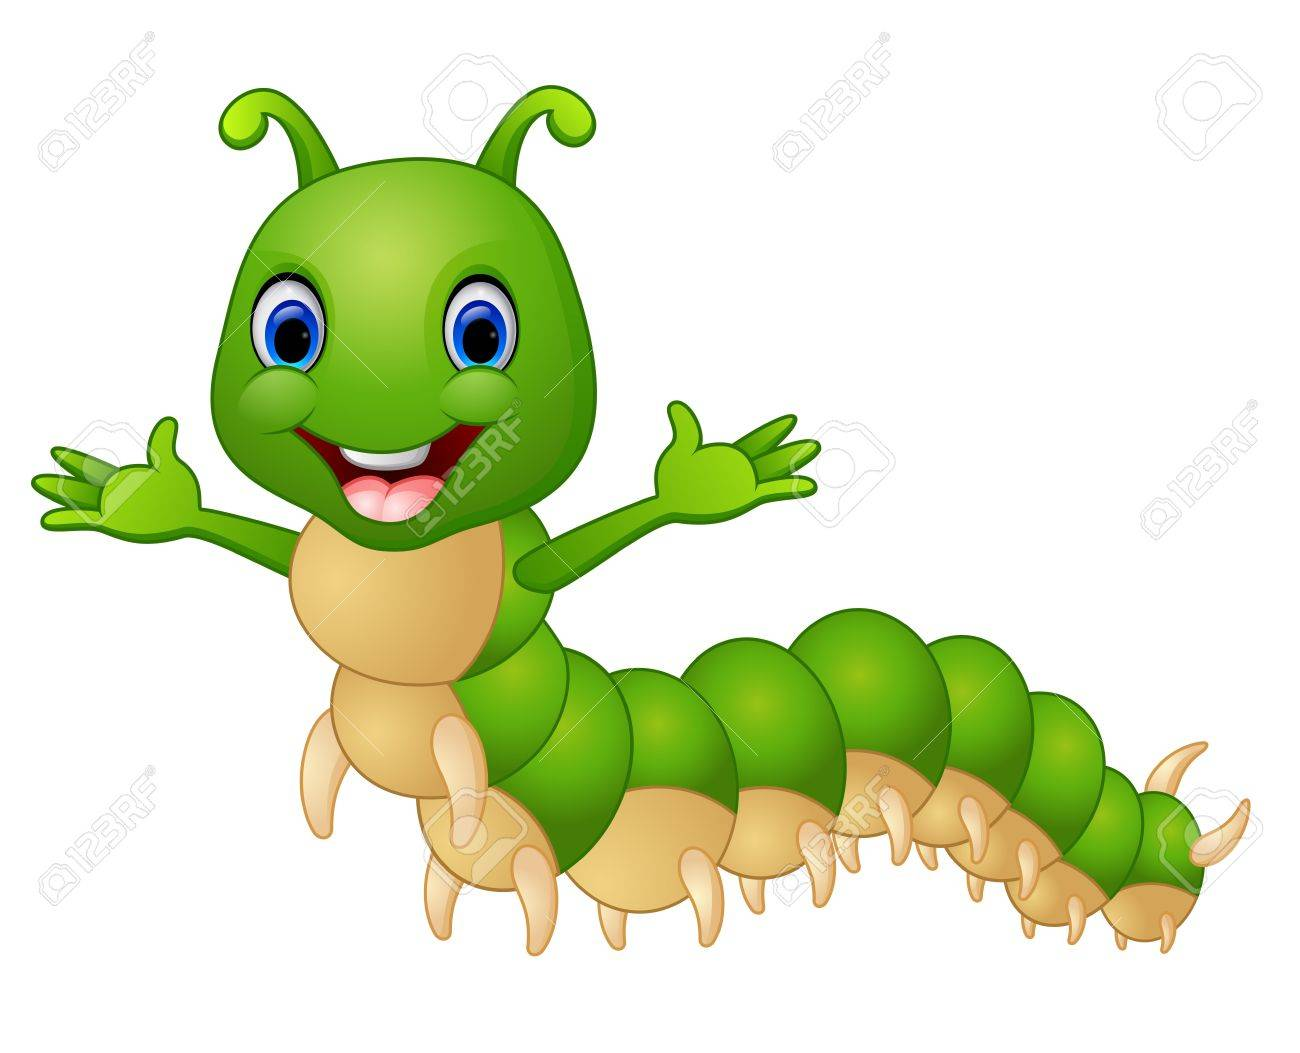 Cute Caterpillar Cartoon Royalty Free Cliparts Vectors And Stock